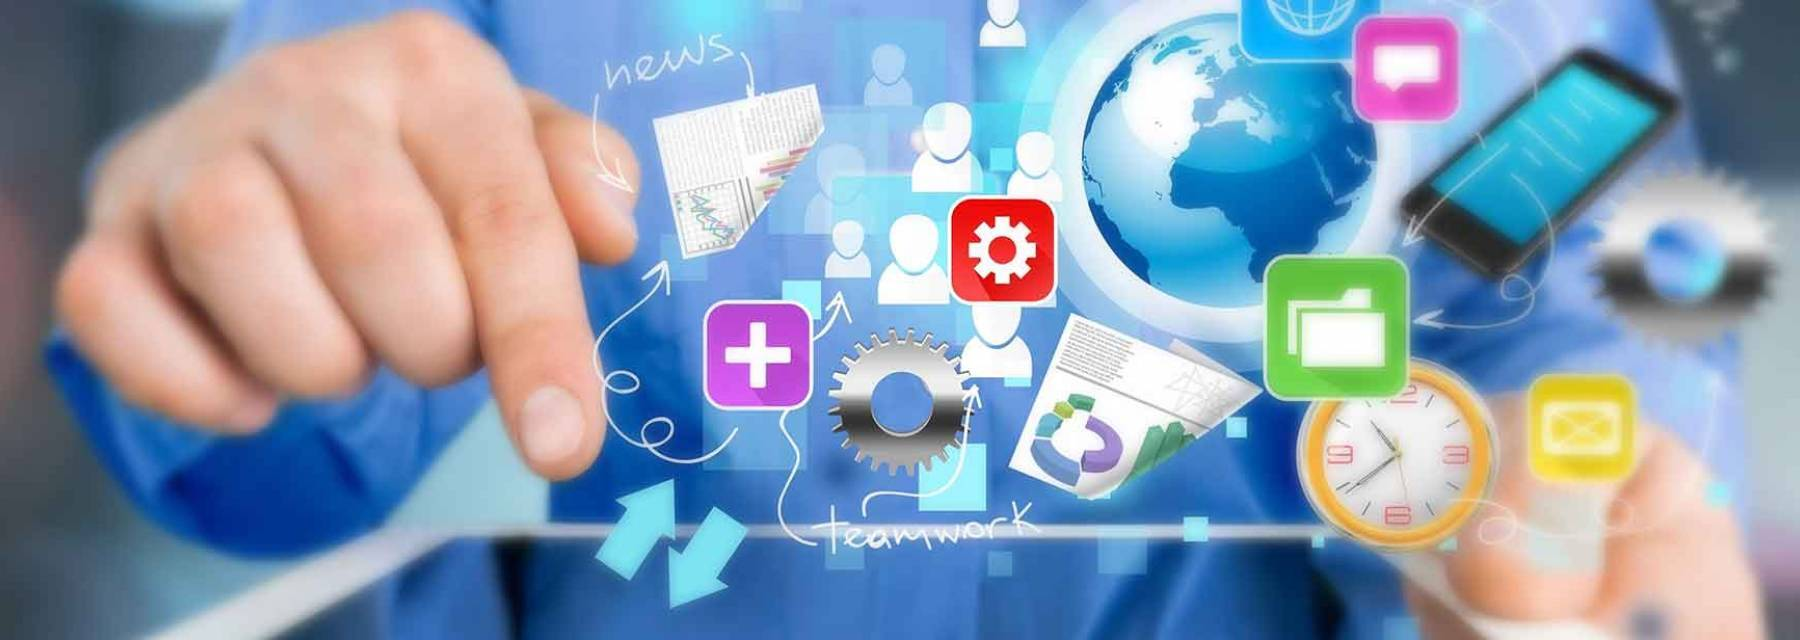 digital-marketing-solutions-services